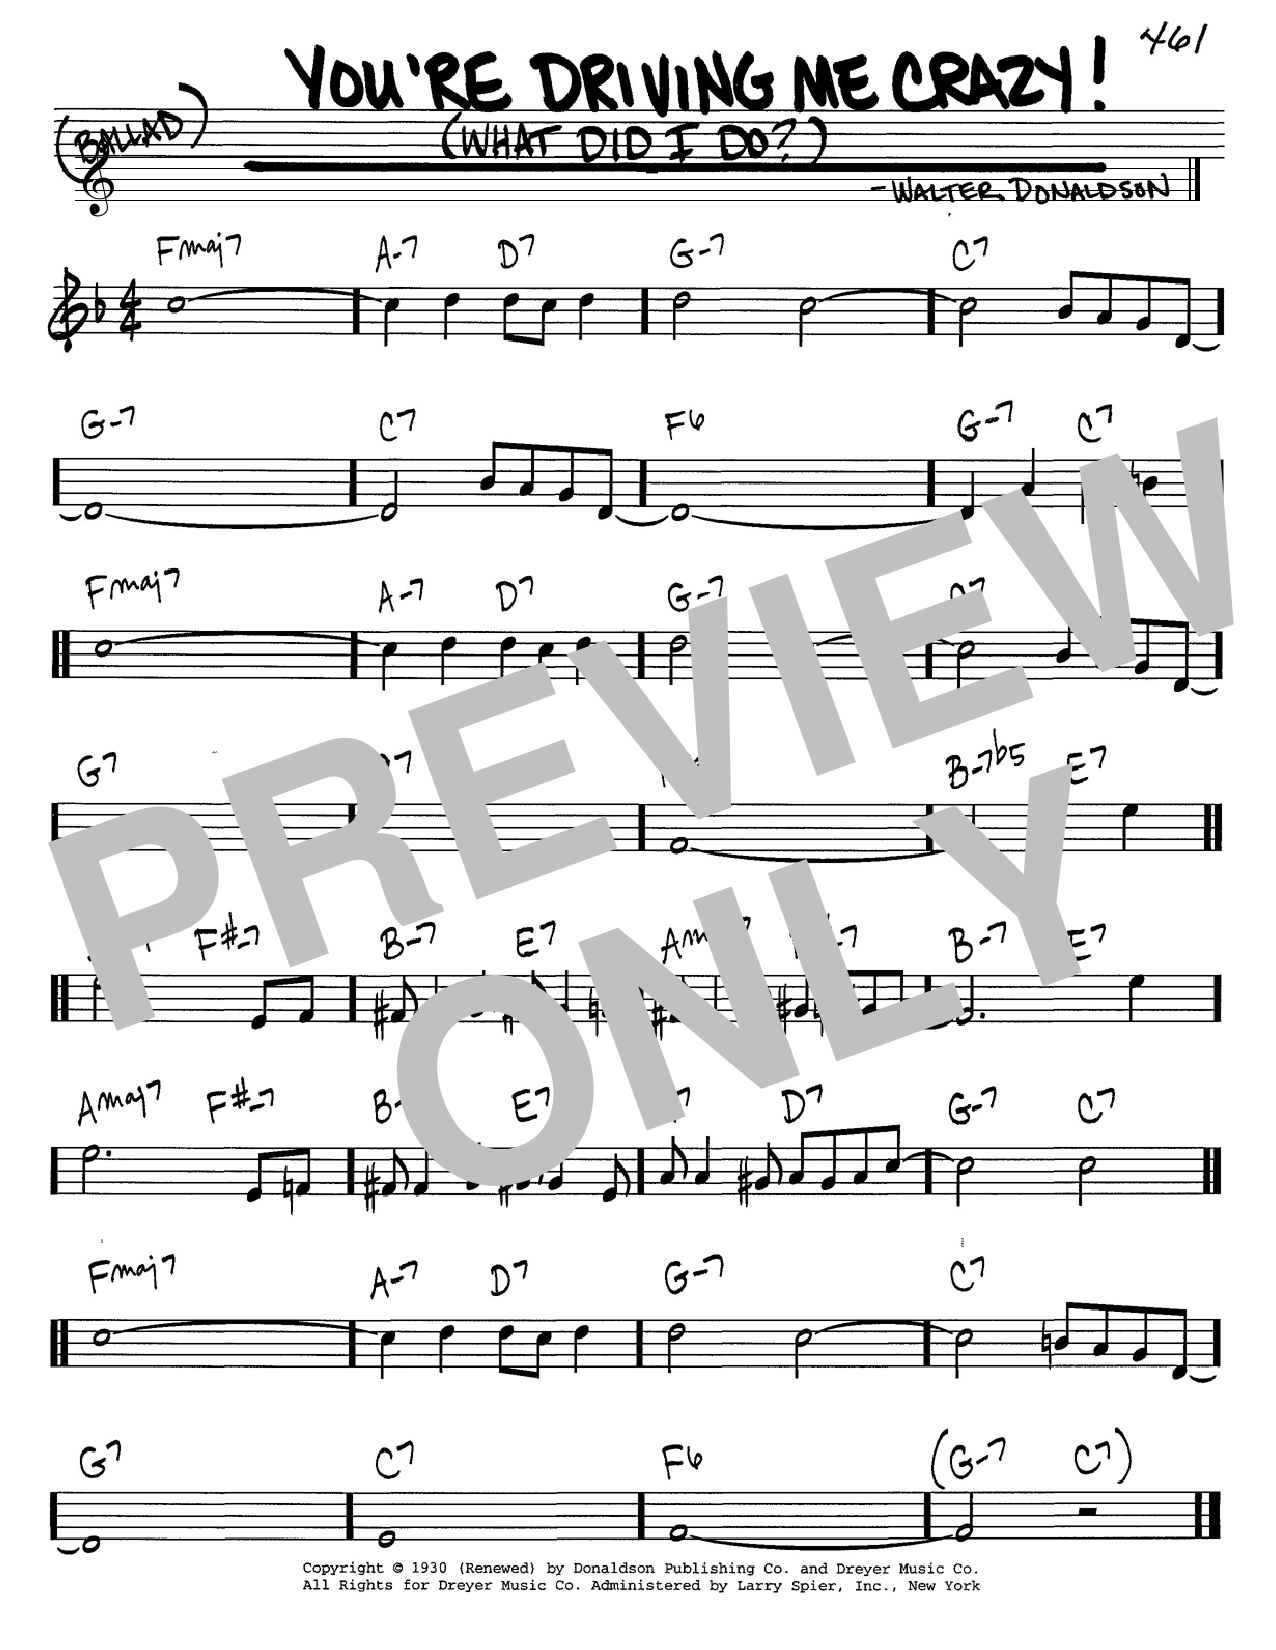 Walter Donaldson You're Driving Me Crazy! (What Did I Do?) sheet music notes and chords